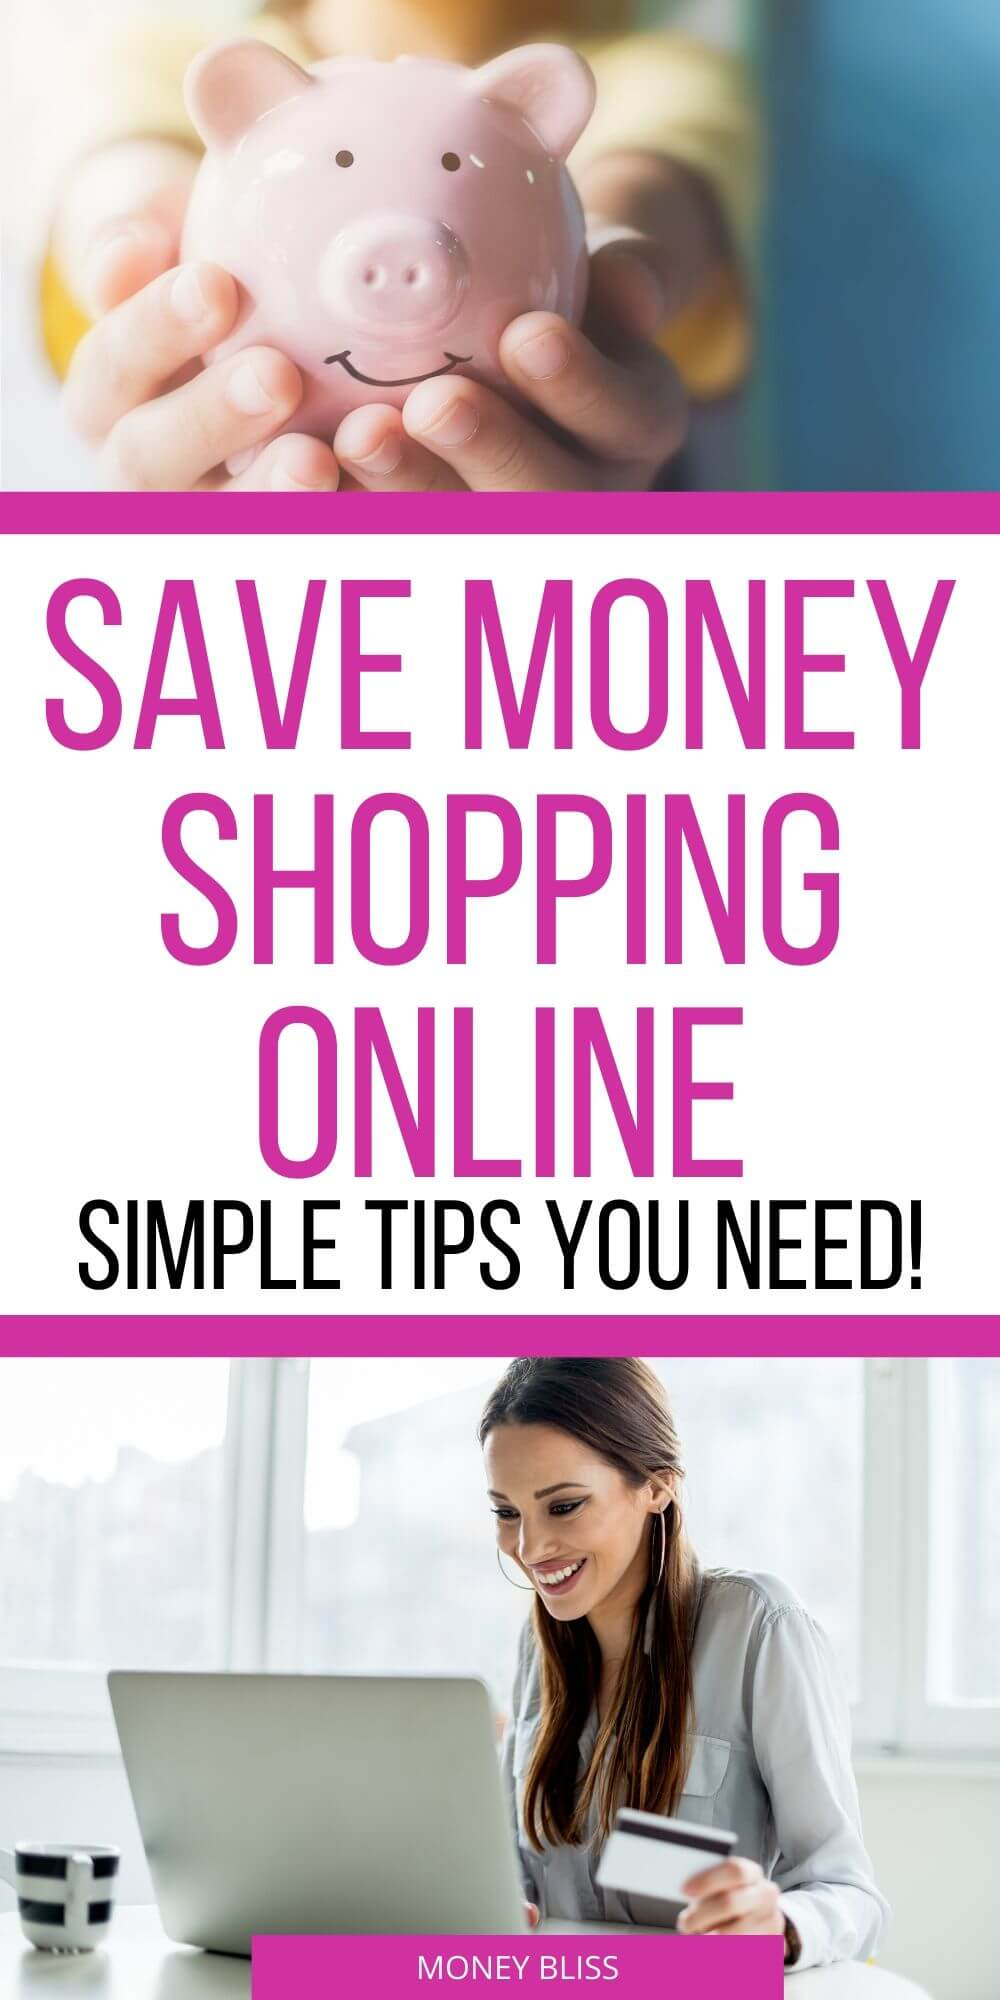 How can I save online? This post will explain ways to save money shopping online. These hacks are simple to implement and won't take a lot of time or money. For the frugal person, this is a natural extension on how to save money money. This is a simple way to improve your budget categories. #moneysavingtips #shopping